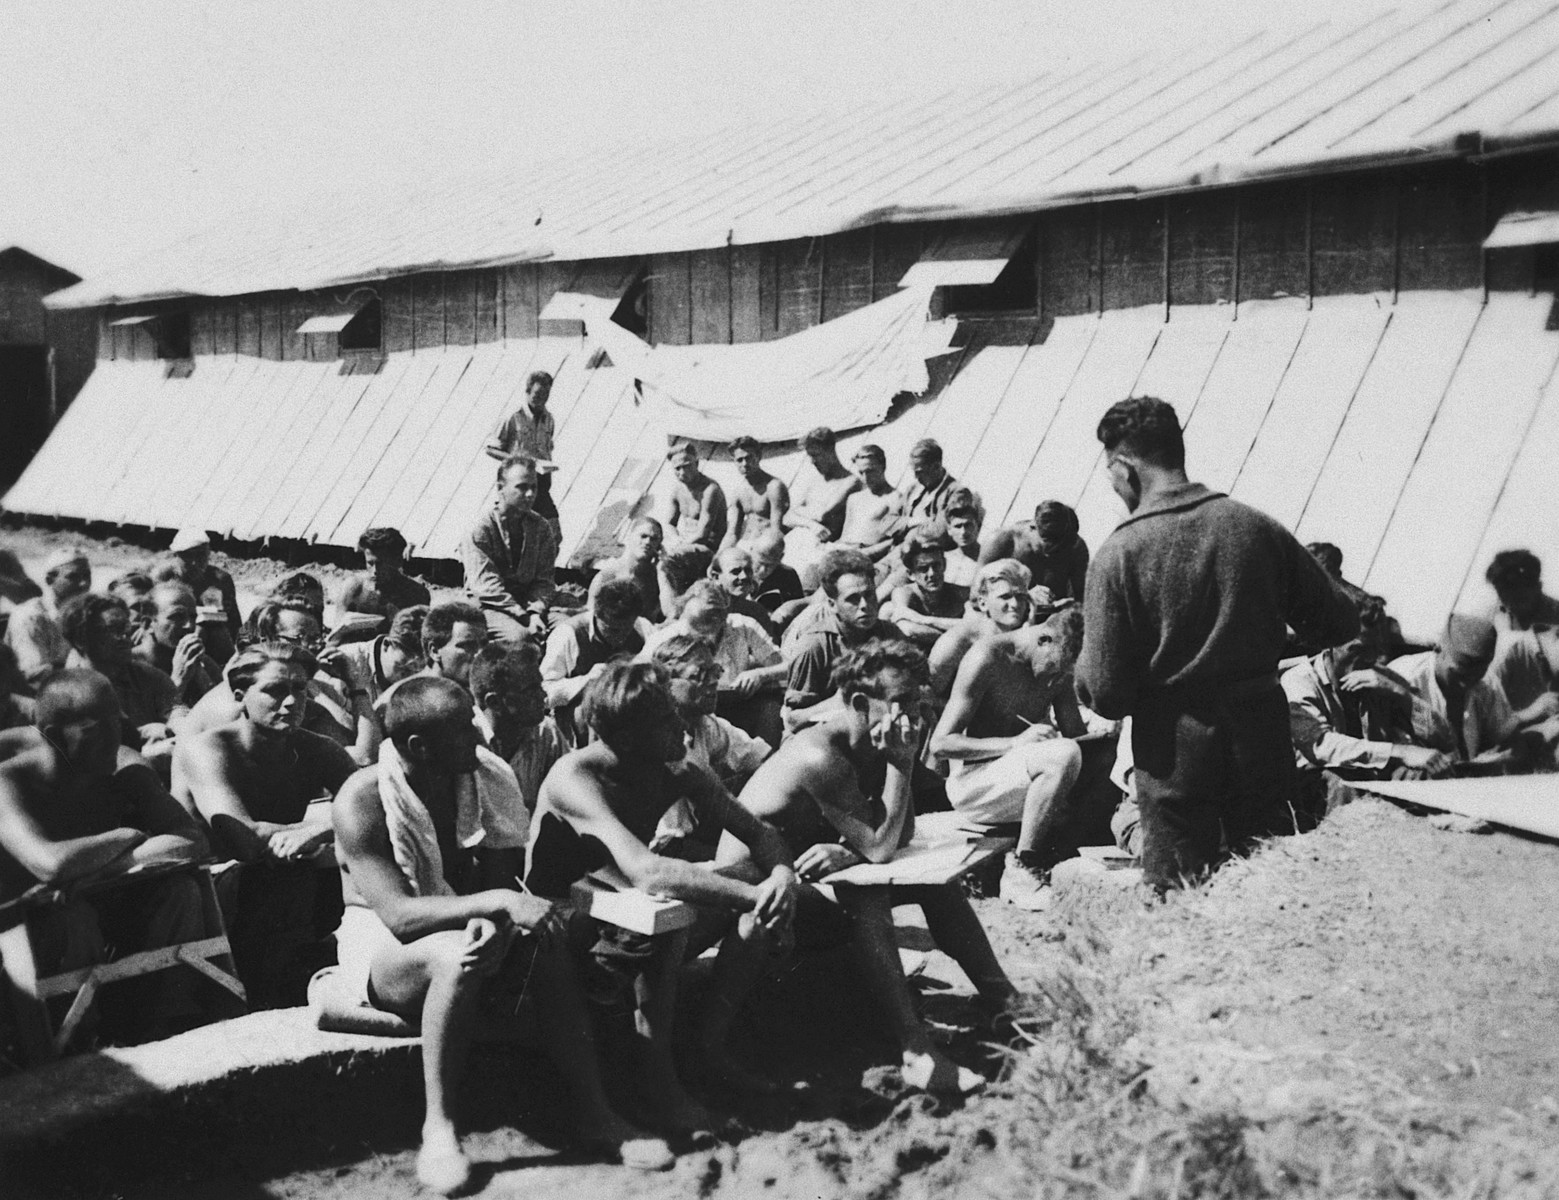 Prisoners listen to a talk in front of the barracks in the Gurs concentration camp in France.